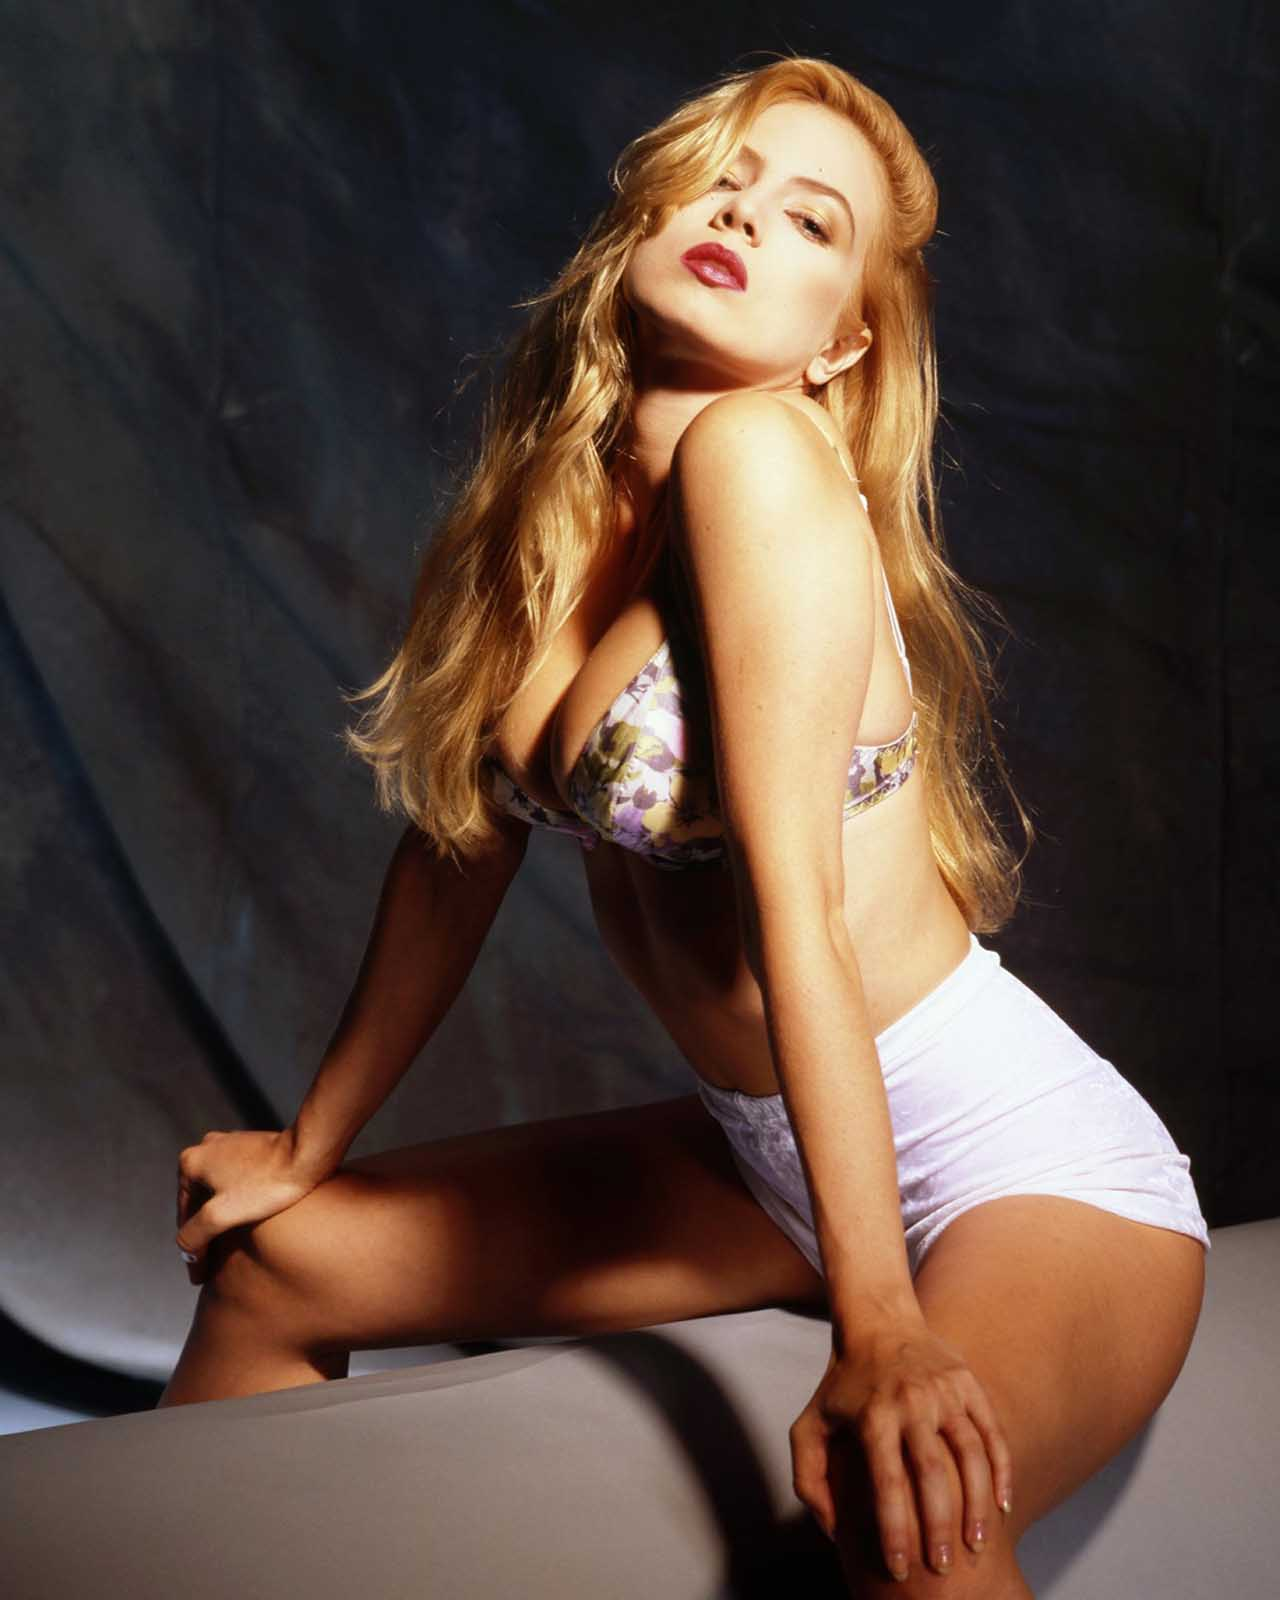 Traci Lords was easily one of the top porn stars in the 80s, but what everyone didn't know is the 20 year old actress was actually 15 when she started.